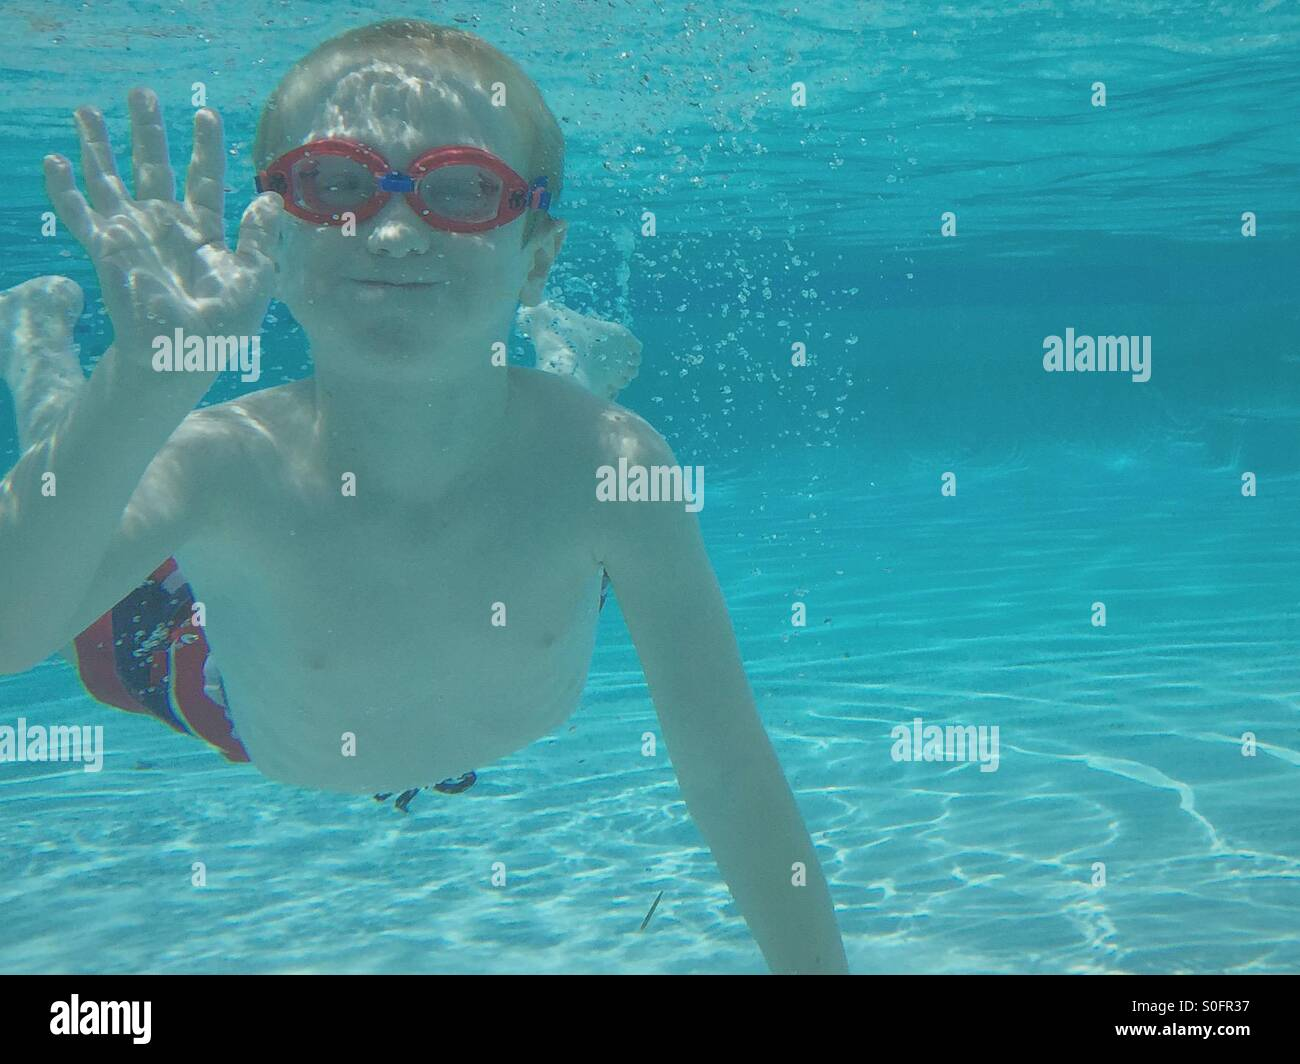 Young boy in swimsuit and goggles waving to the camera from under water. - Stock Image